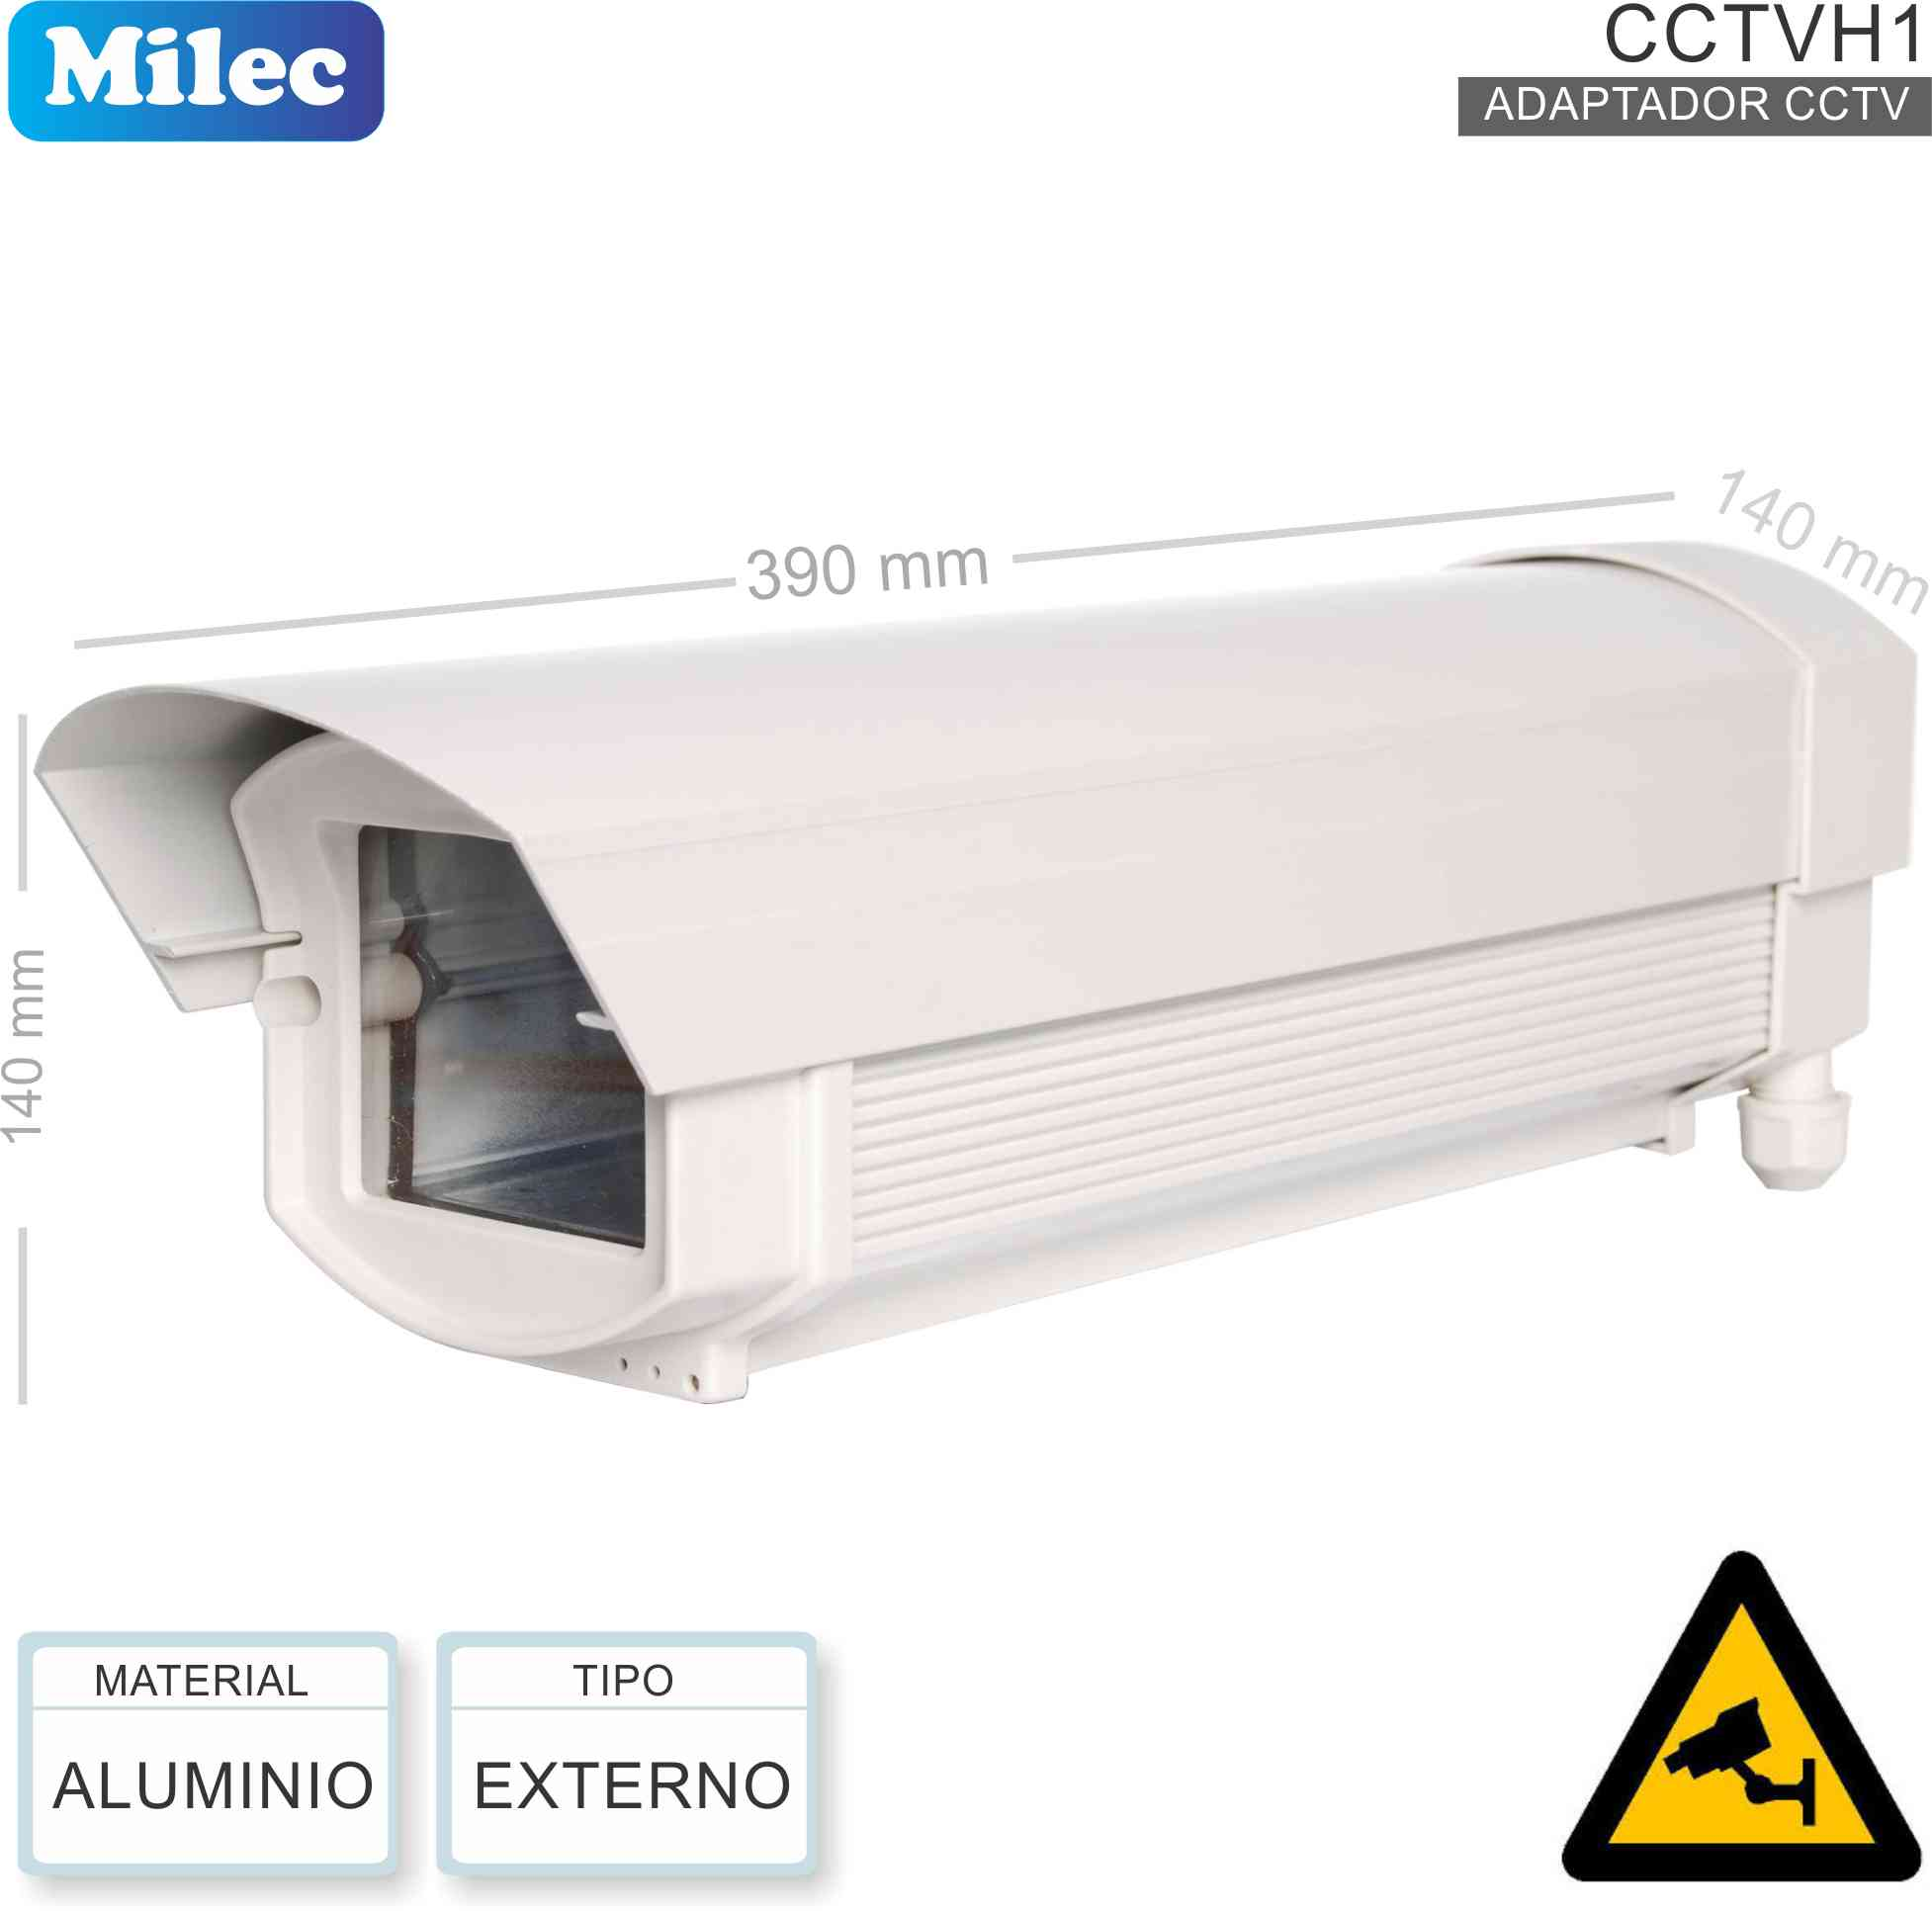 Housing CCTV Ext MILEC CCTVH1